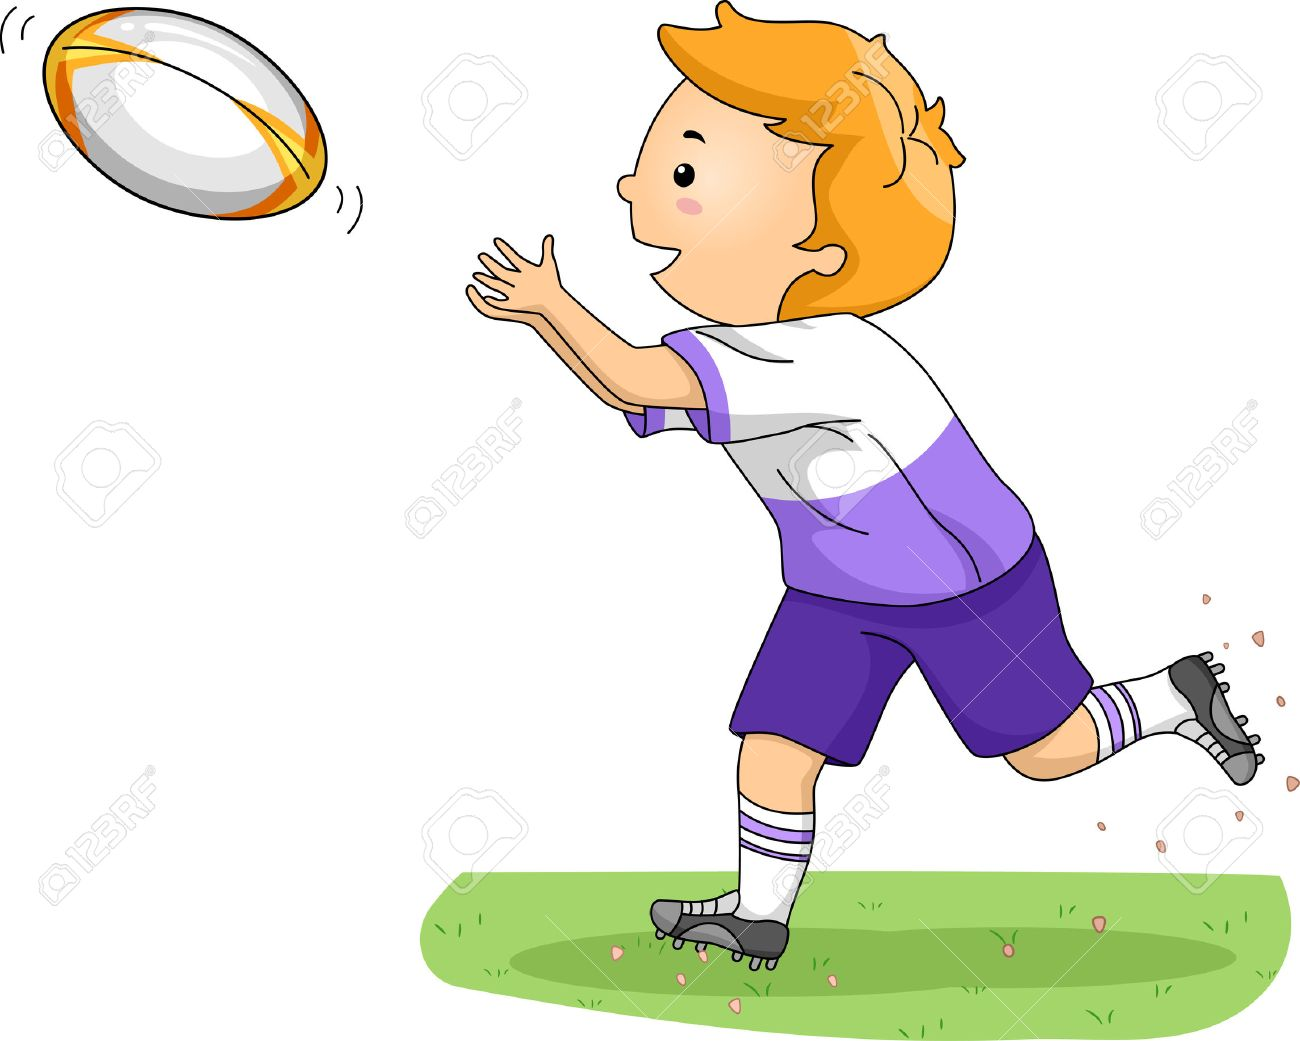 Illustration Of A Boy Catching A Rugby Ball Royalty Free Cliparts